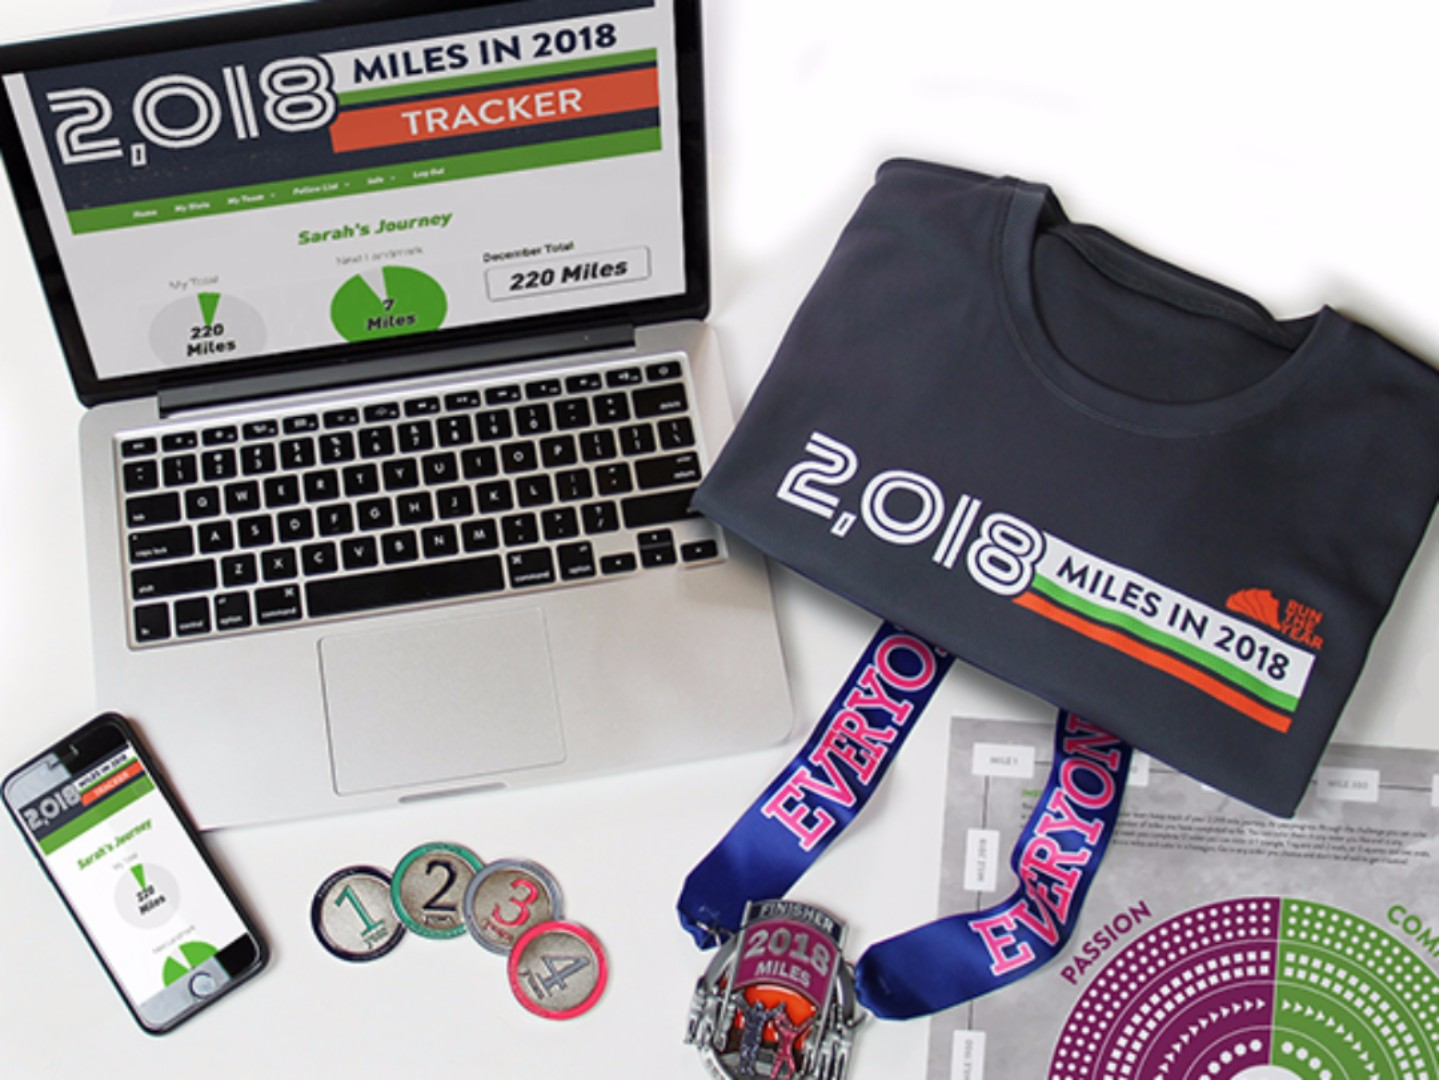 If you need a little motivation to get off the couch and out the door, join us for the Run the Edge Run the Year 2018 Virtual Race challenge. Run the Year 2018 is a virtual race challenging you to run 2018 miles in 12 months. #ad #runtheedge #runtheyear2018 #runchat #running #virtualrace #virtualrun